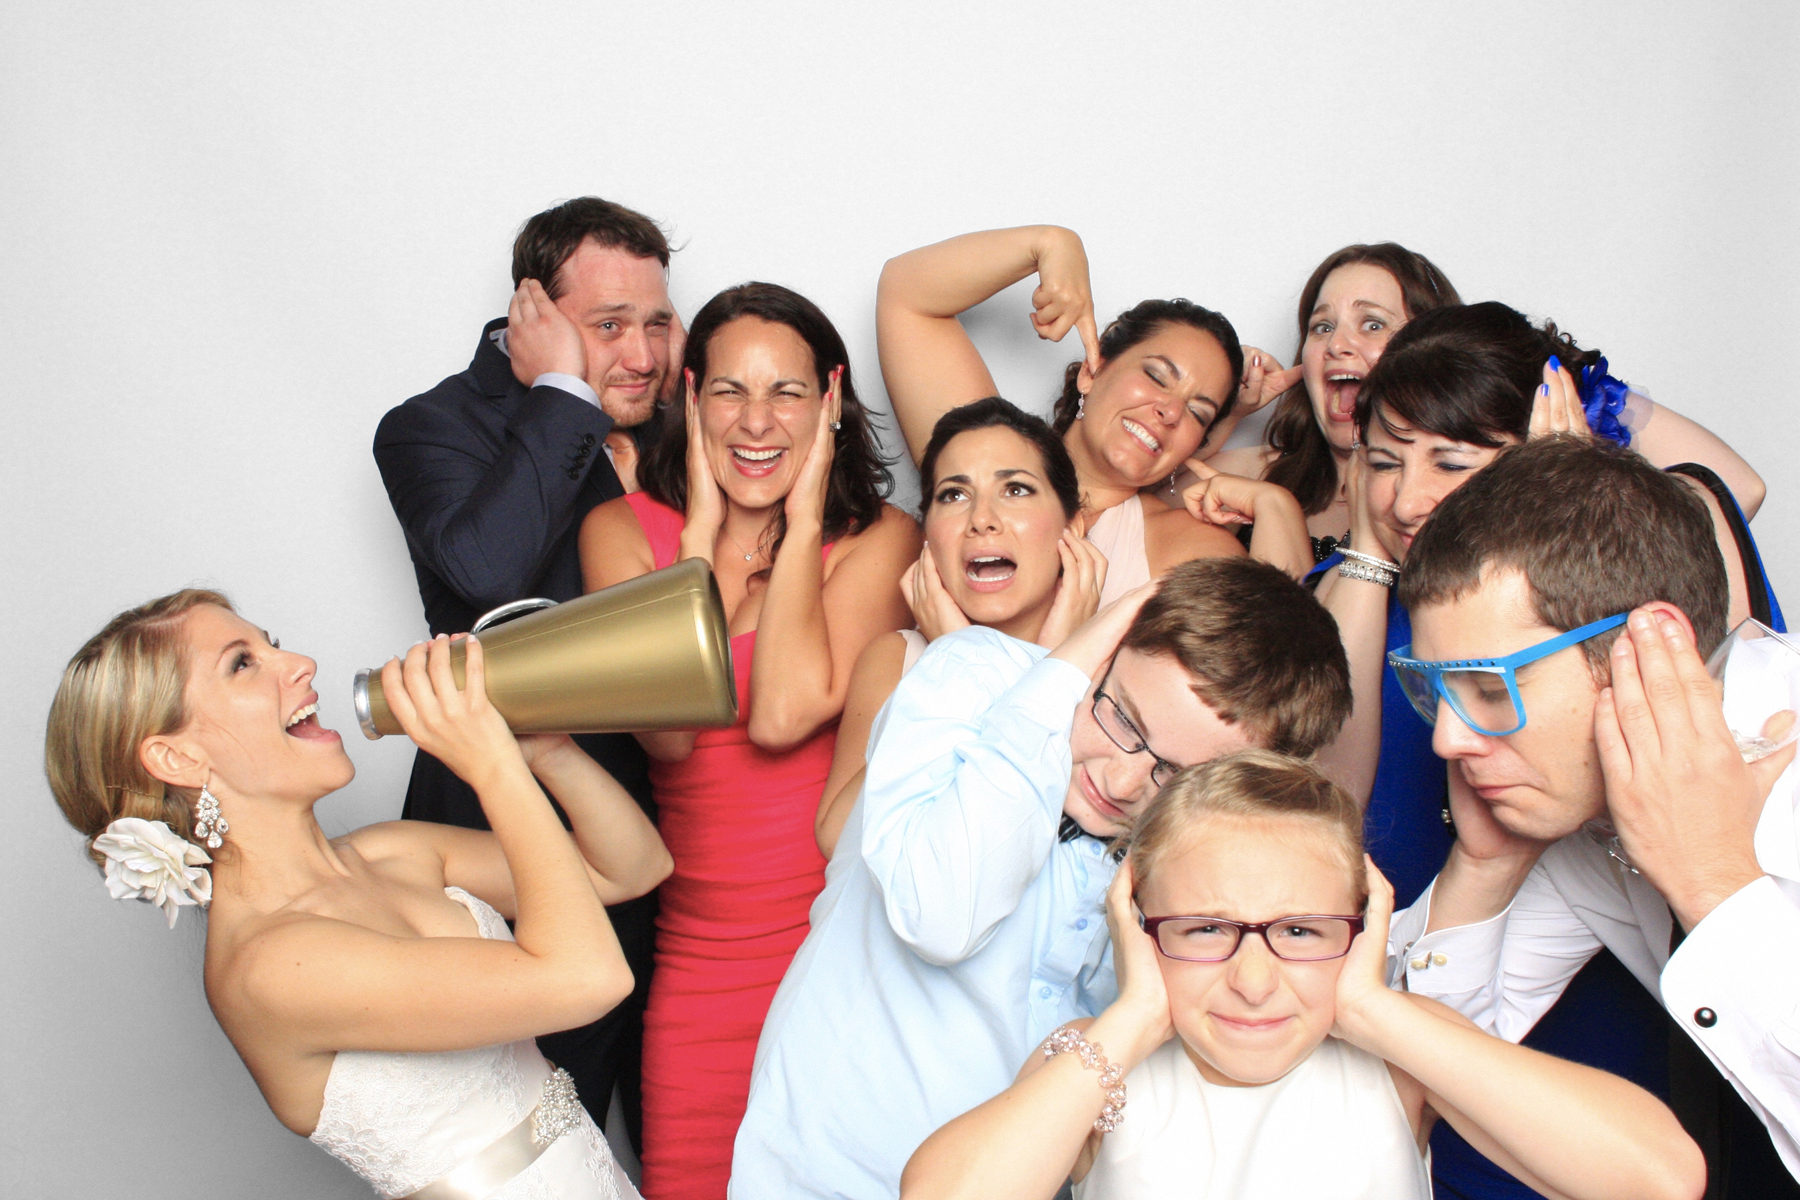 New York Photo Booth Wedding Megaphone Bride